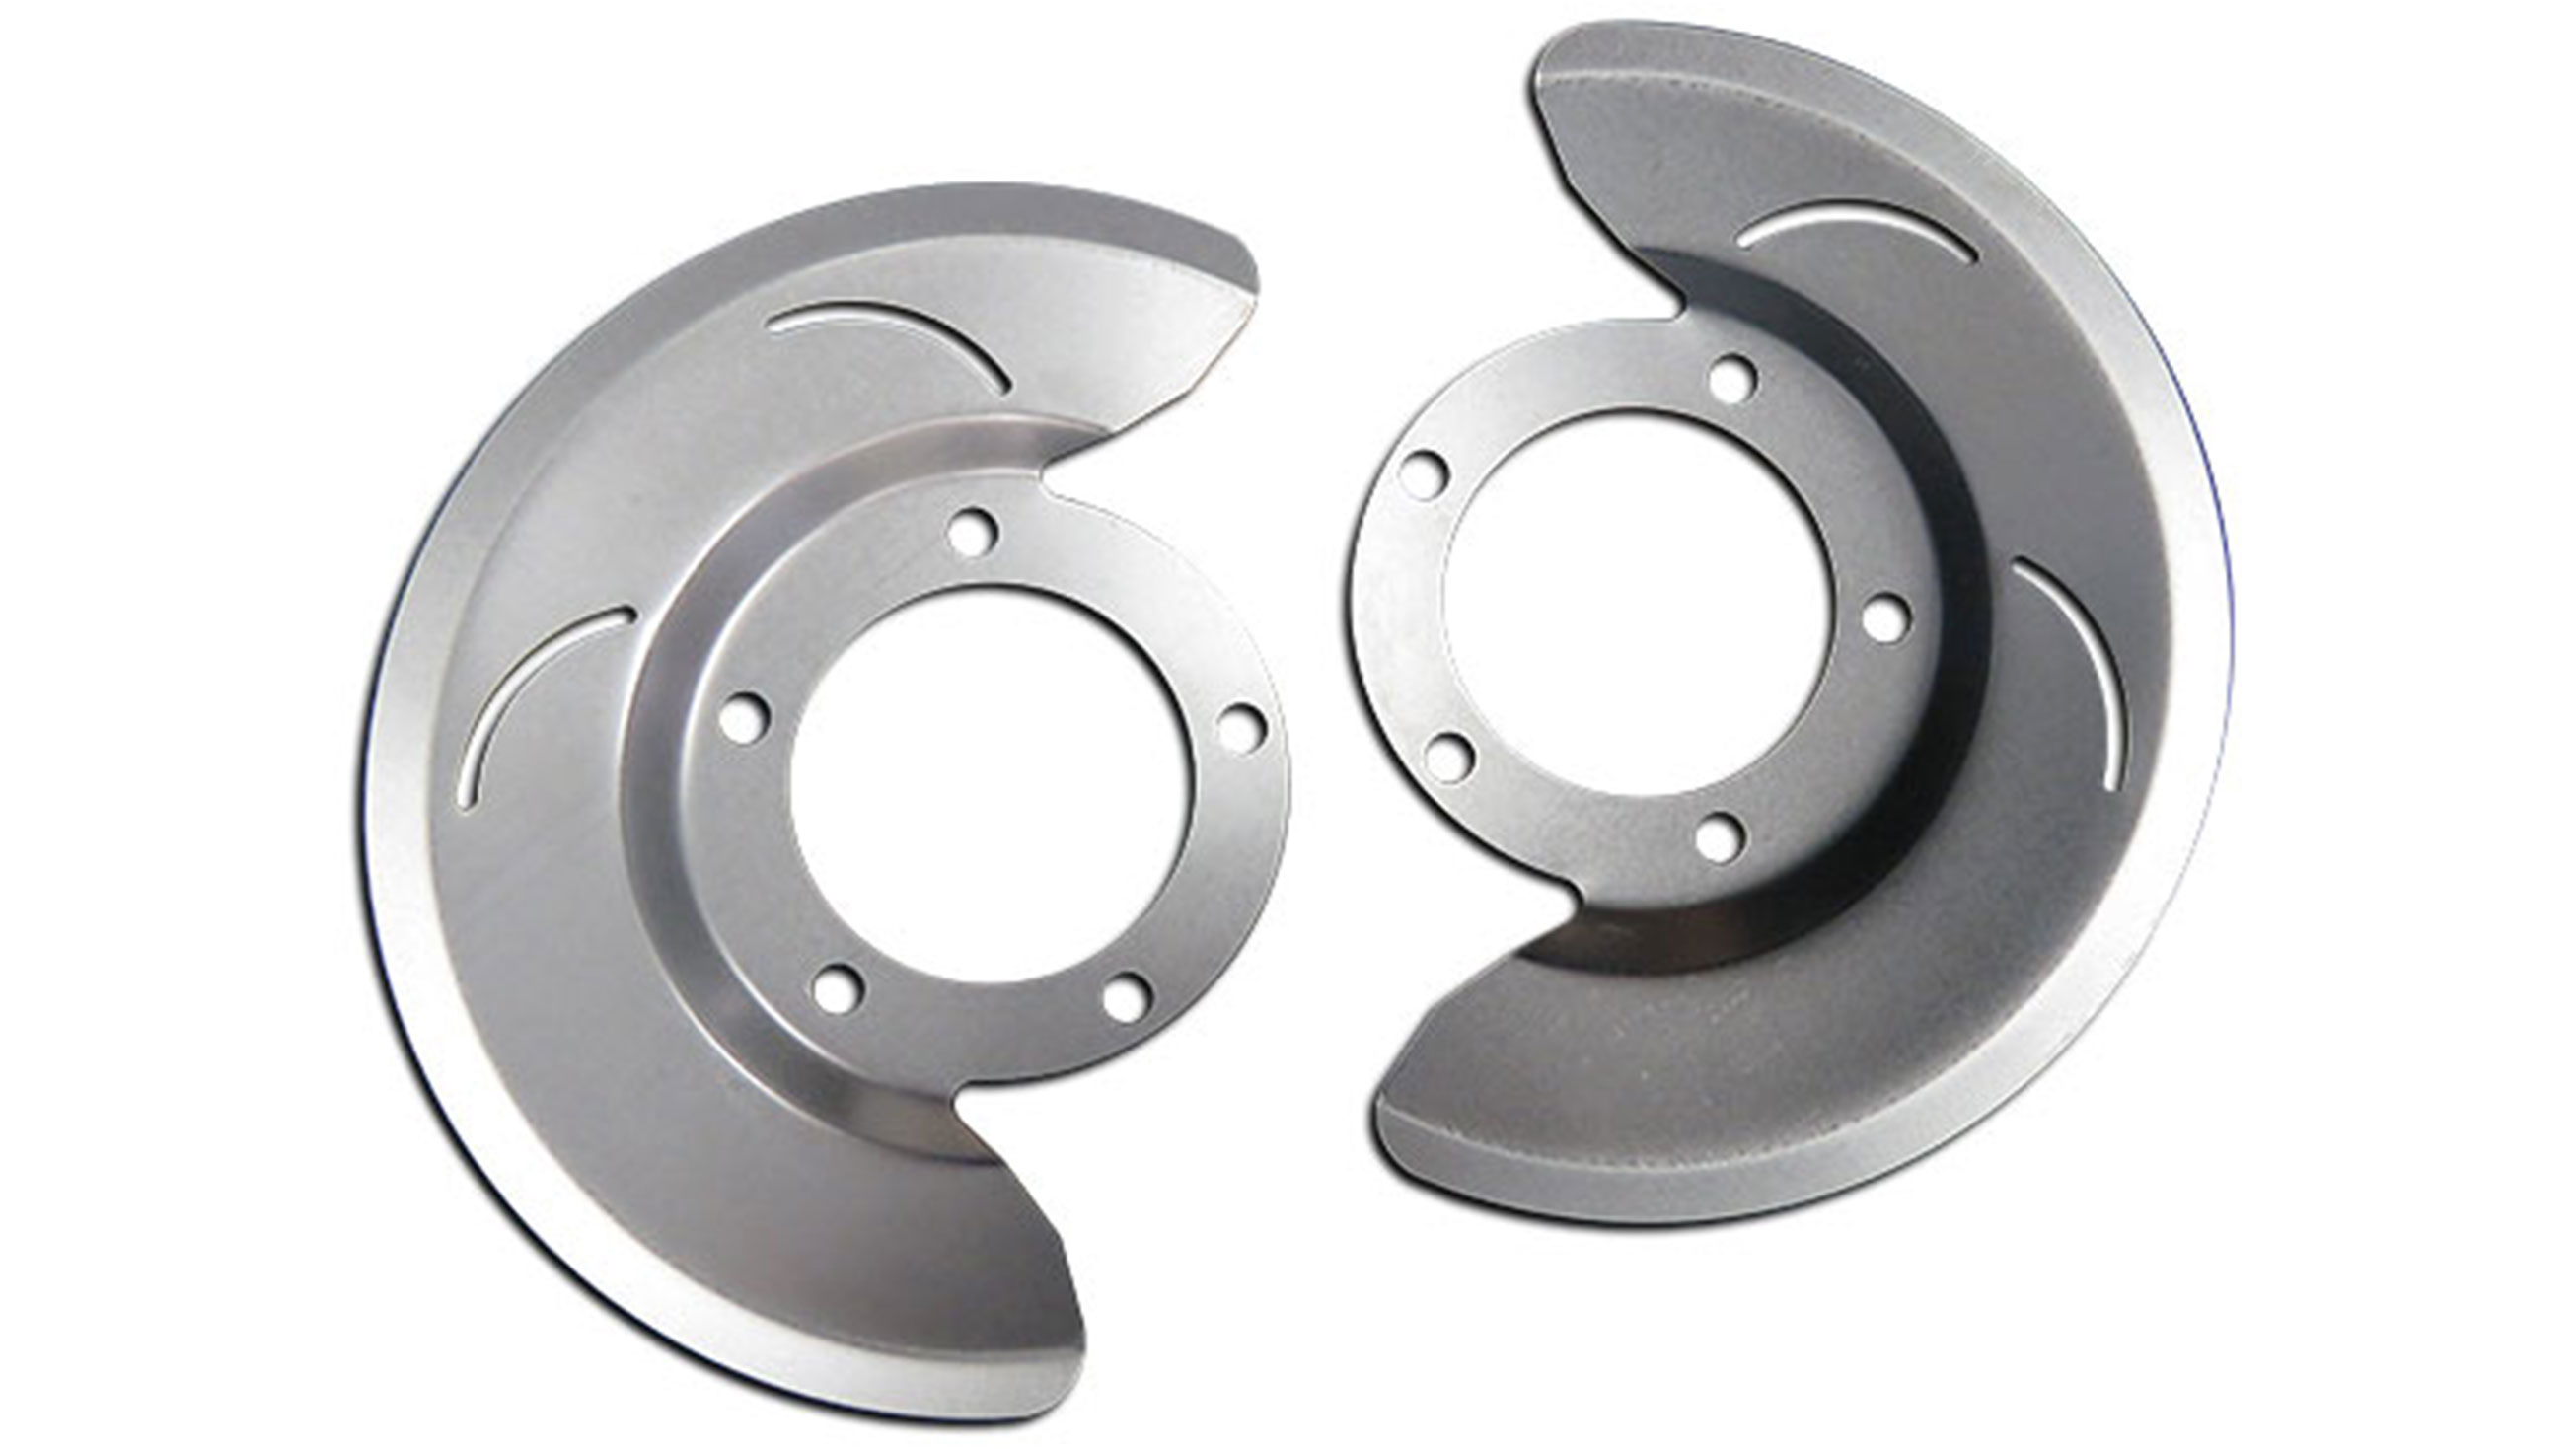 Dust Shields for Front Disc Brakes, 76-79 Ford Bronco, Pair